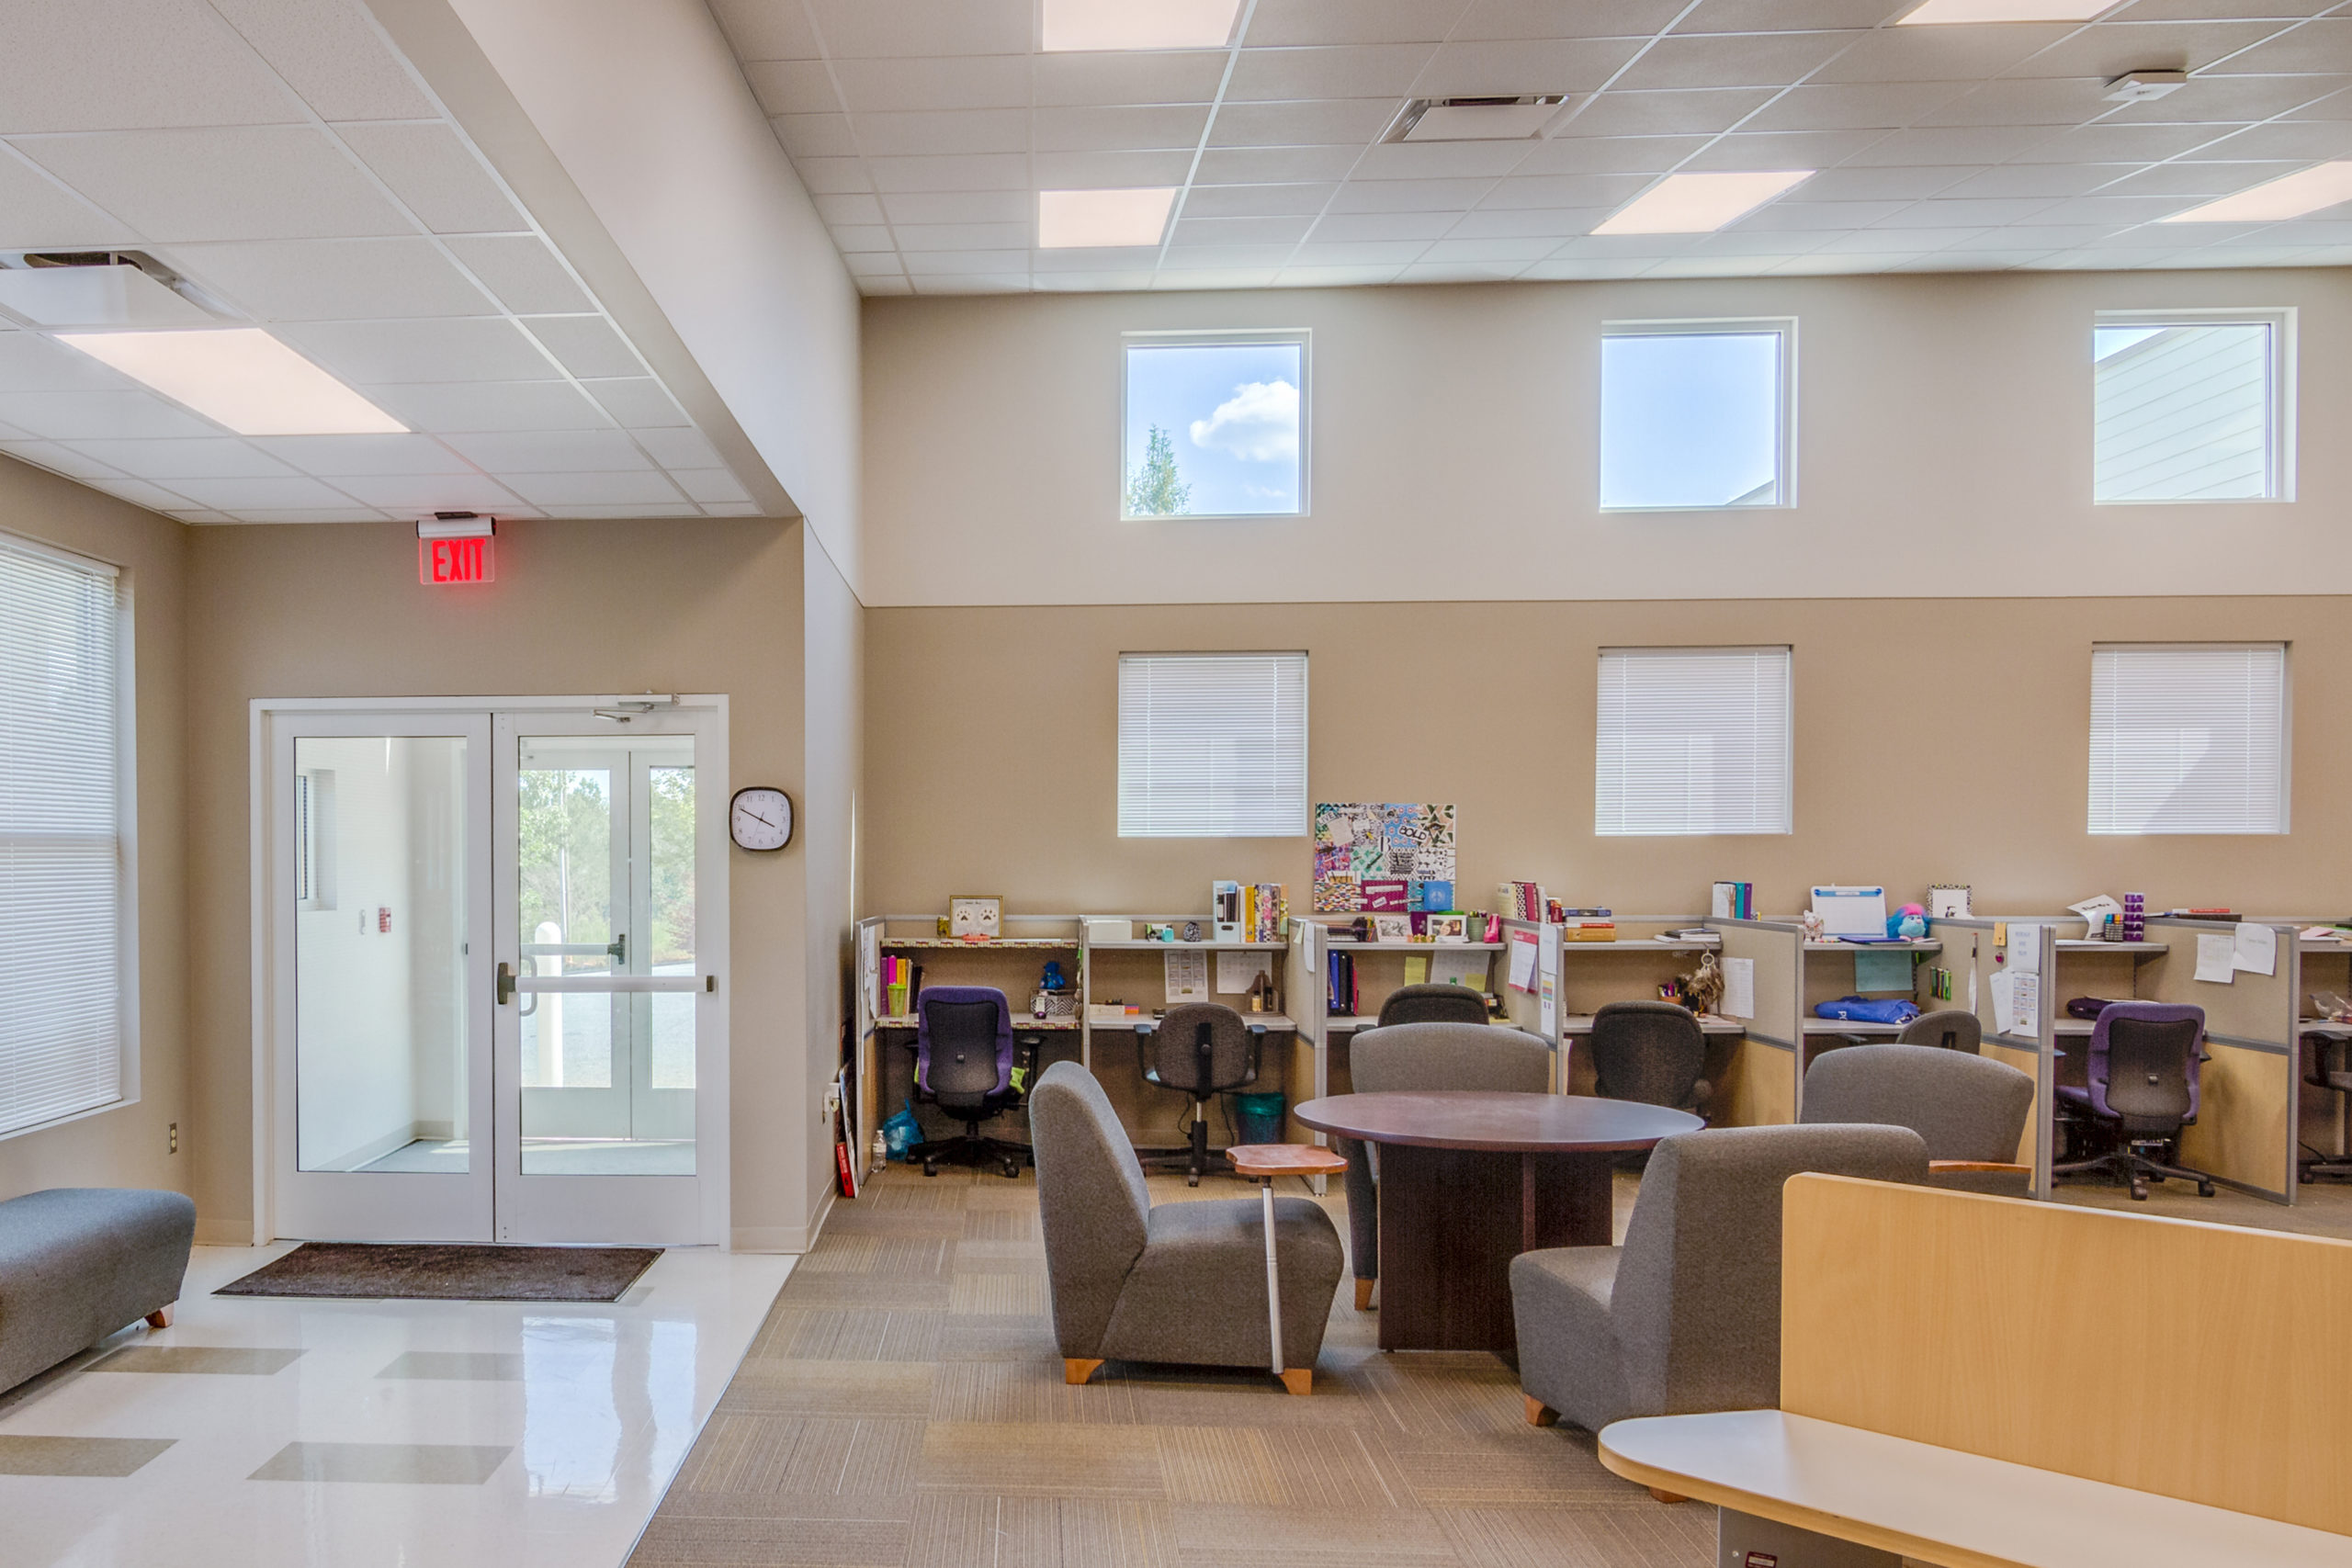 An interior view of the Polk County Early College showing student work areas and the main entrance.